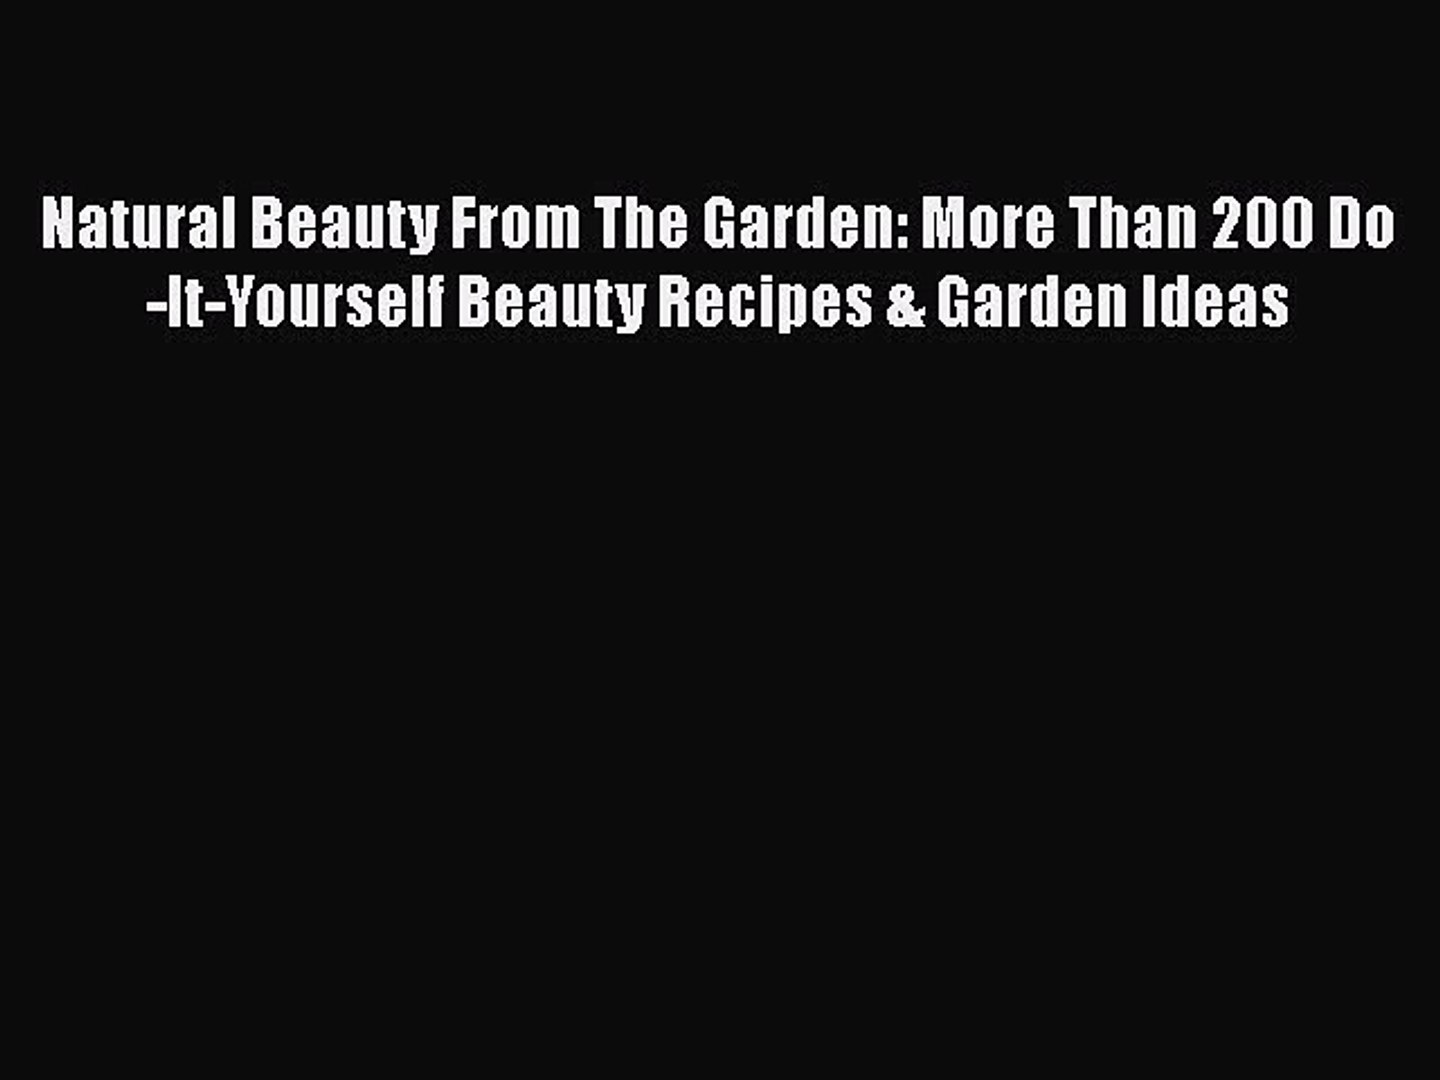 Read Natural Beauty From The Garden: More Than 200 Do-It-Yourself Beauty Recipes & Garden Ideas